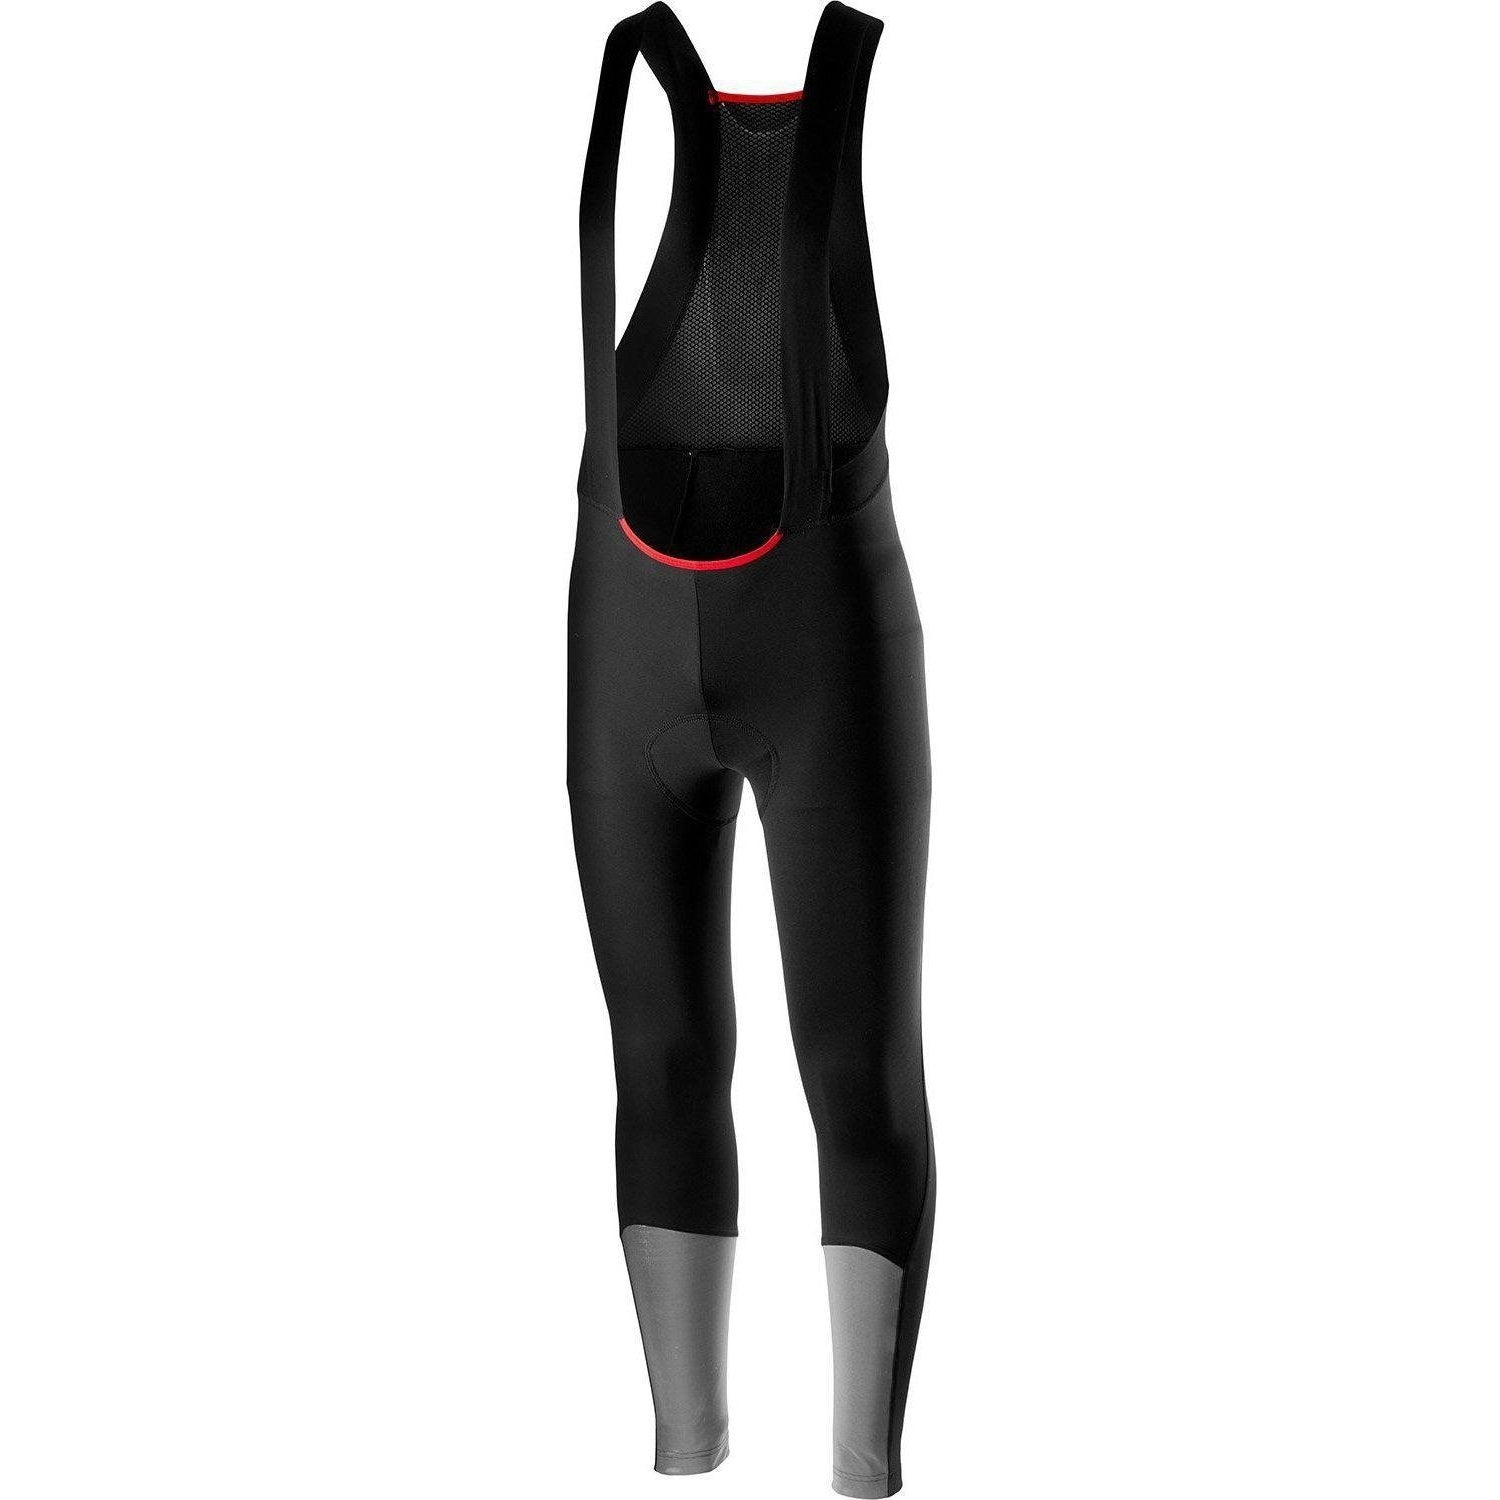 Castelli-Castelli Nano Flex Pro 2 RoS Bib Tights-Black-S-CS185150102-saddleback-elite-performance-cycling